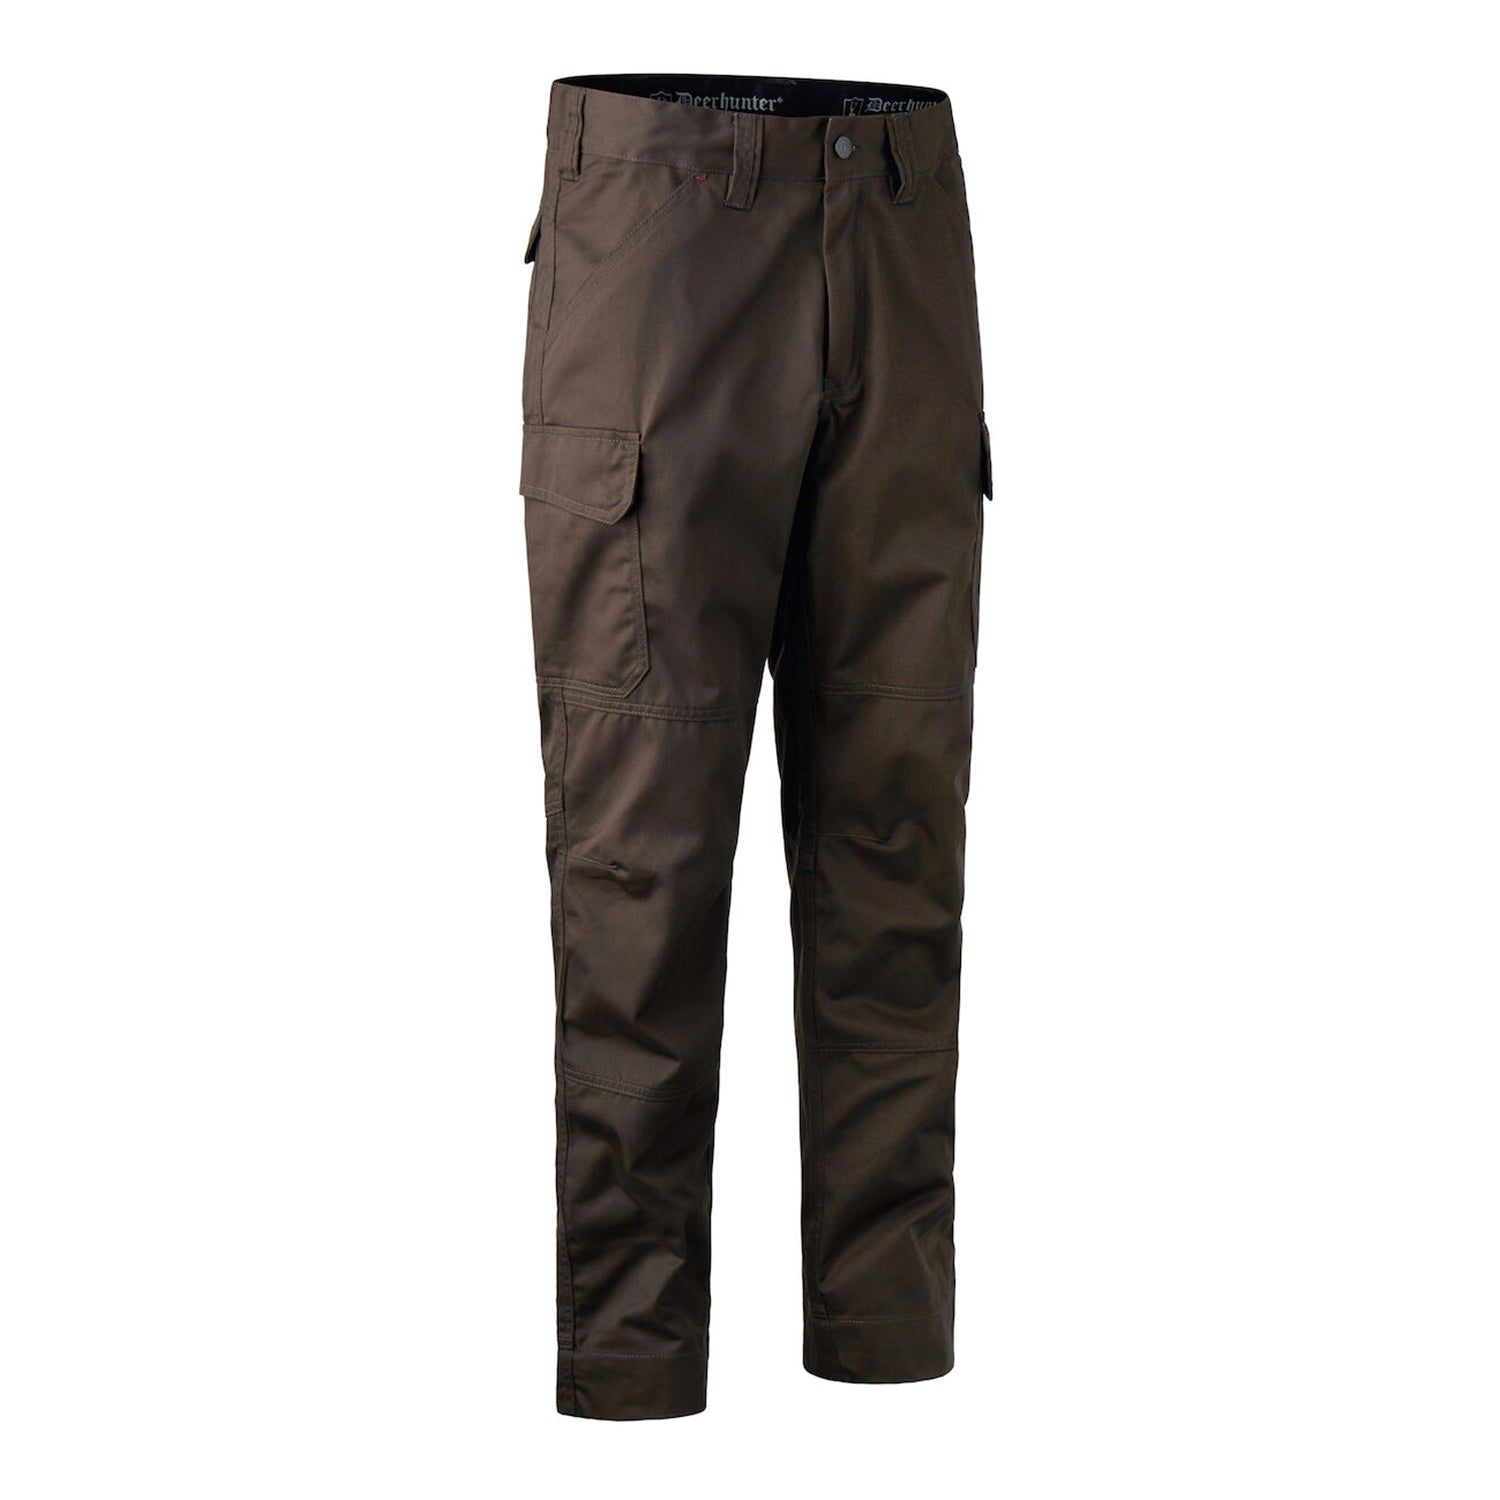 Deerhunter Rogaland Expedition Bukser